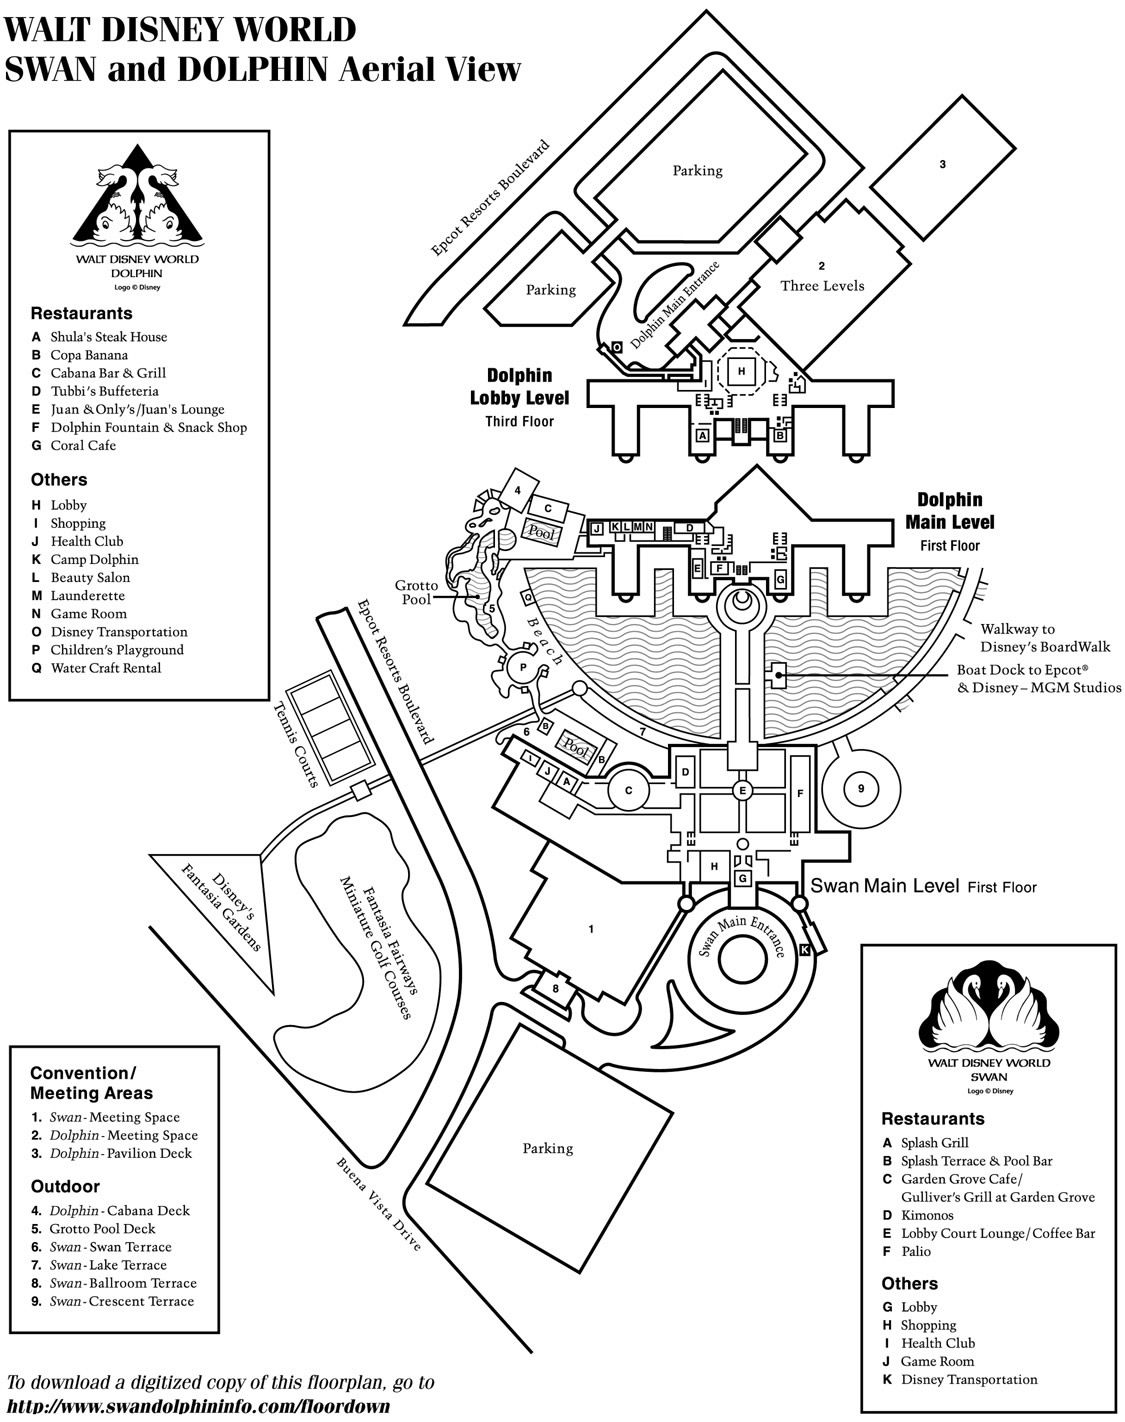 Disney resorts swan and dolphin map wdw disney resorts disney resorts swan and dolphin map gumiabroncs Images